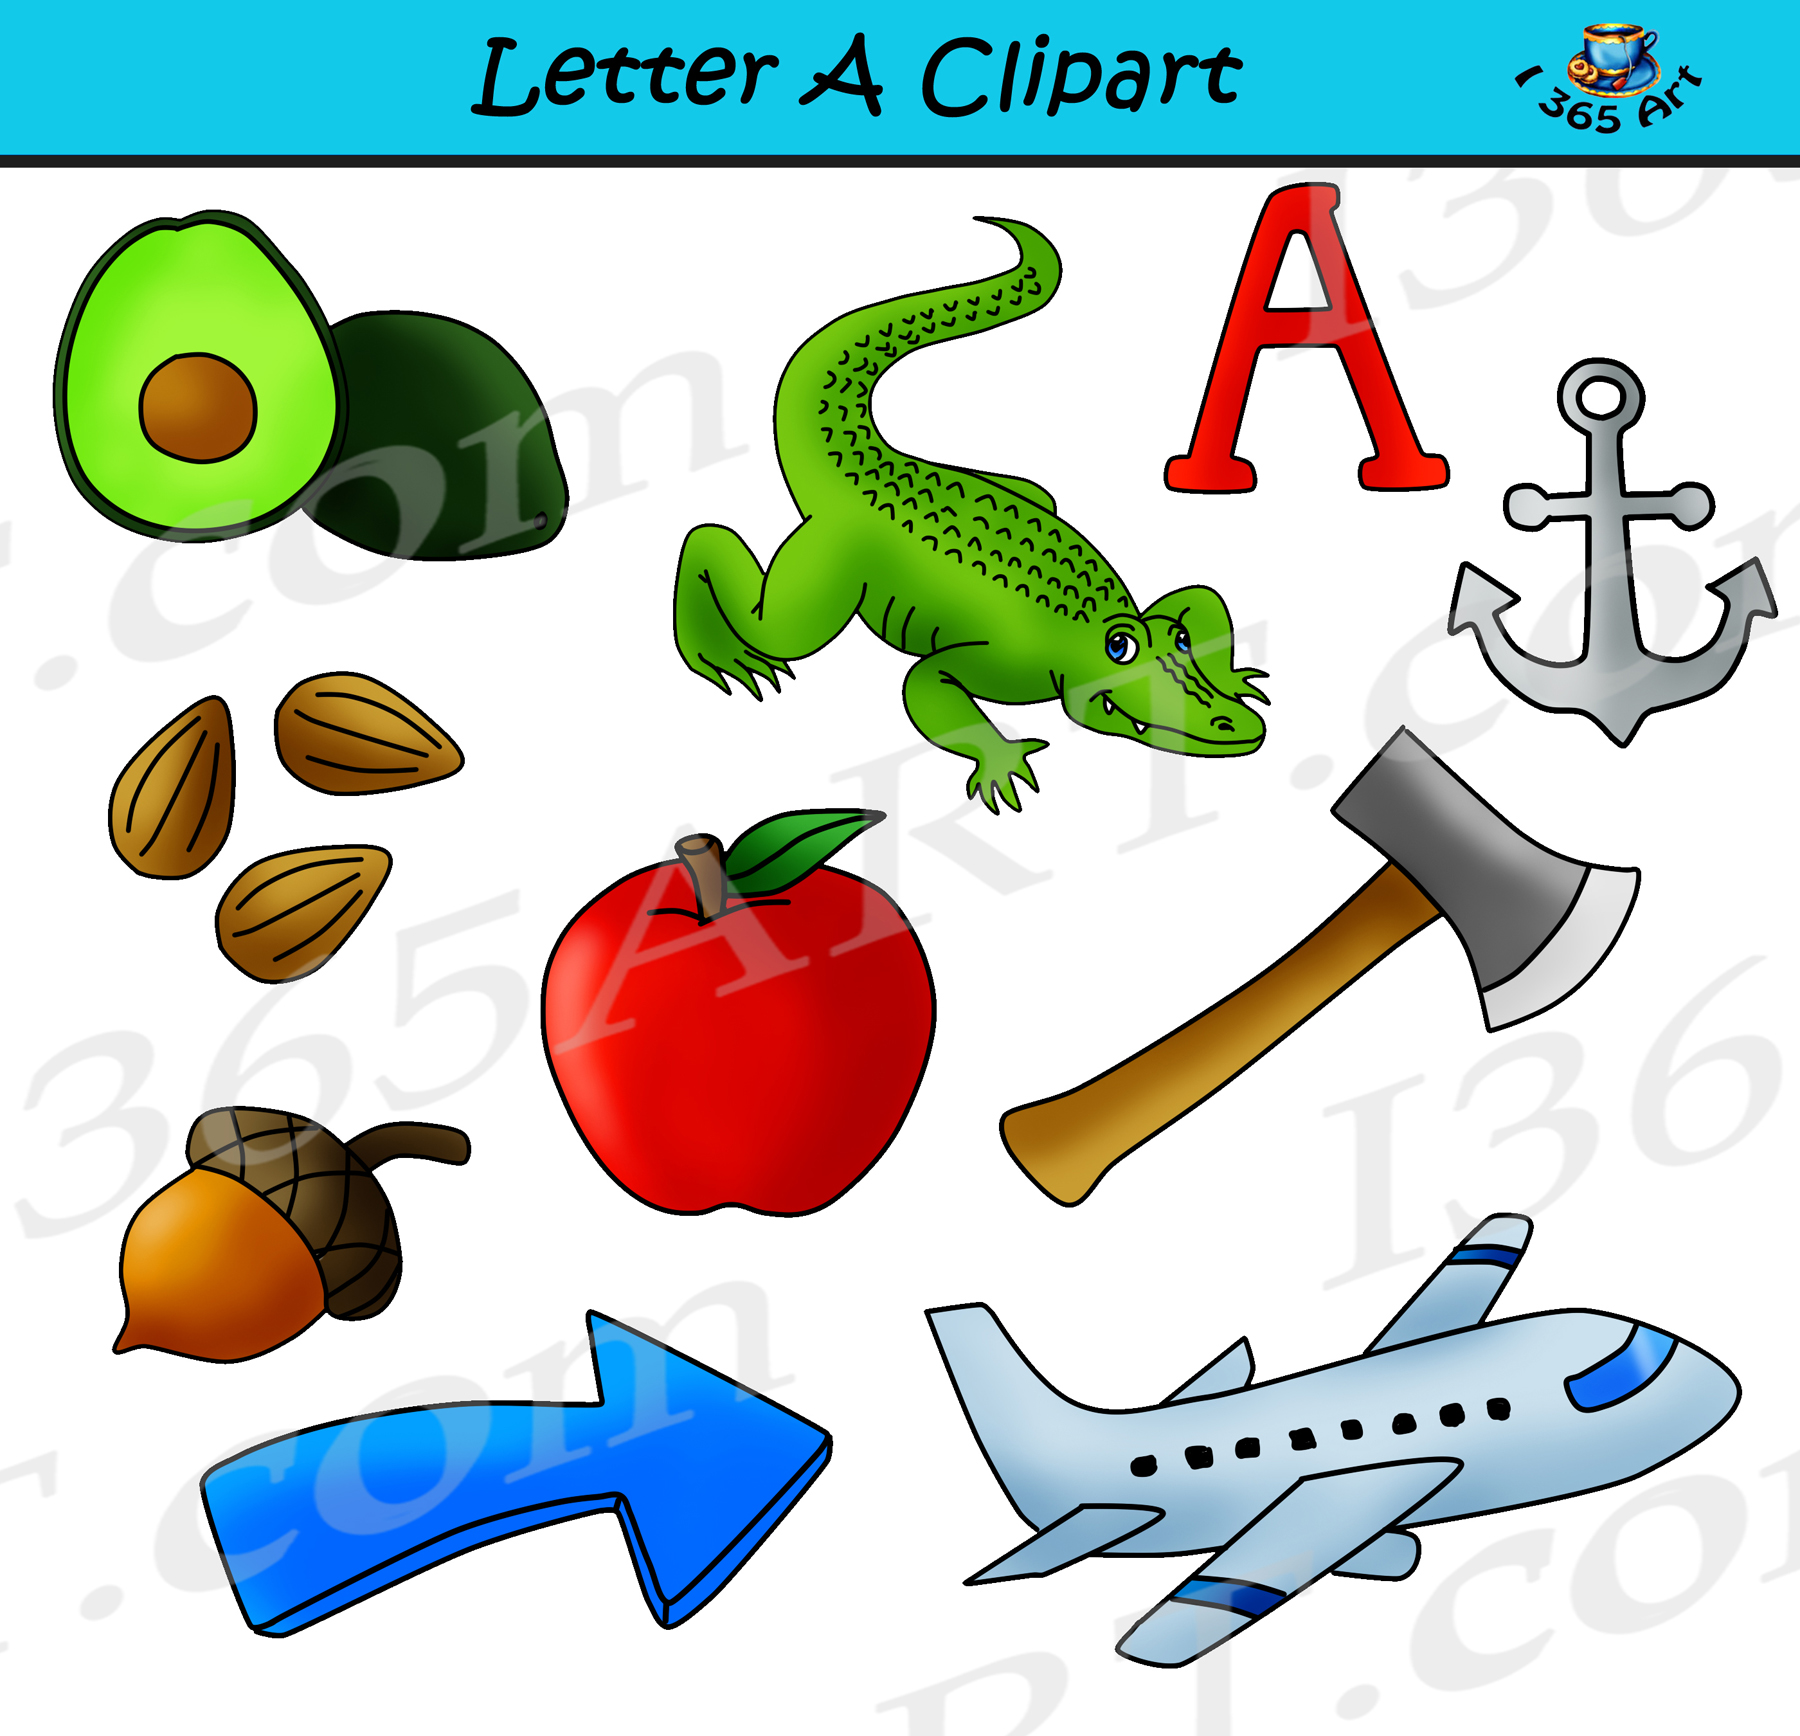 letter a objects clipart learning the alphabets commercial clipart rh clipart4school com a clipart island a+ clipart free